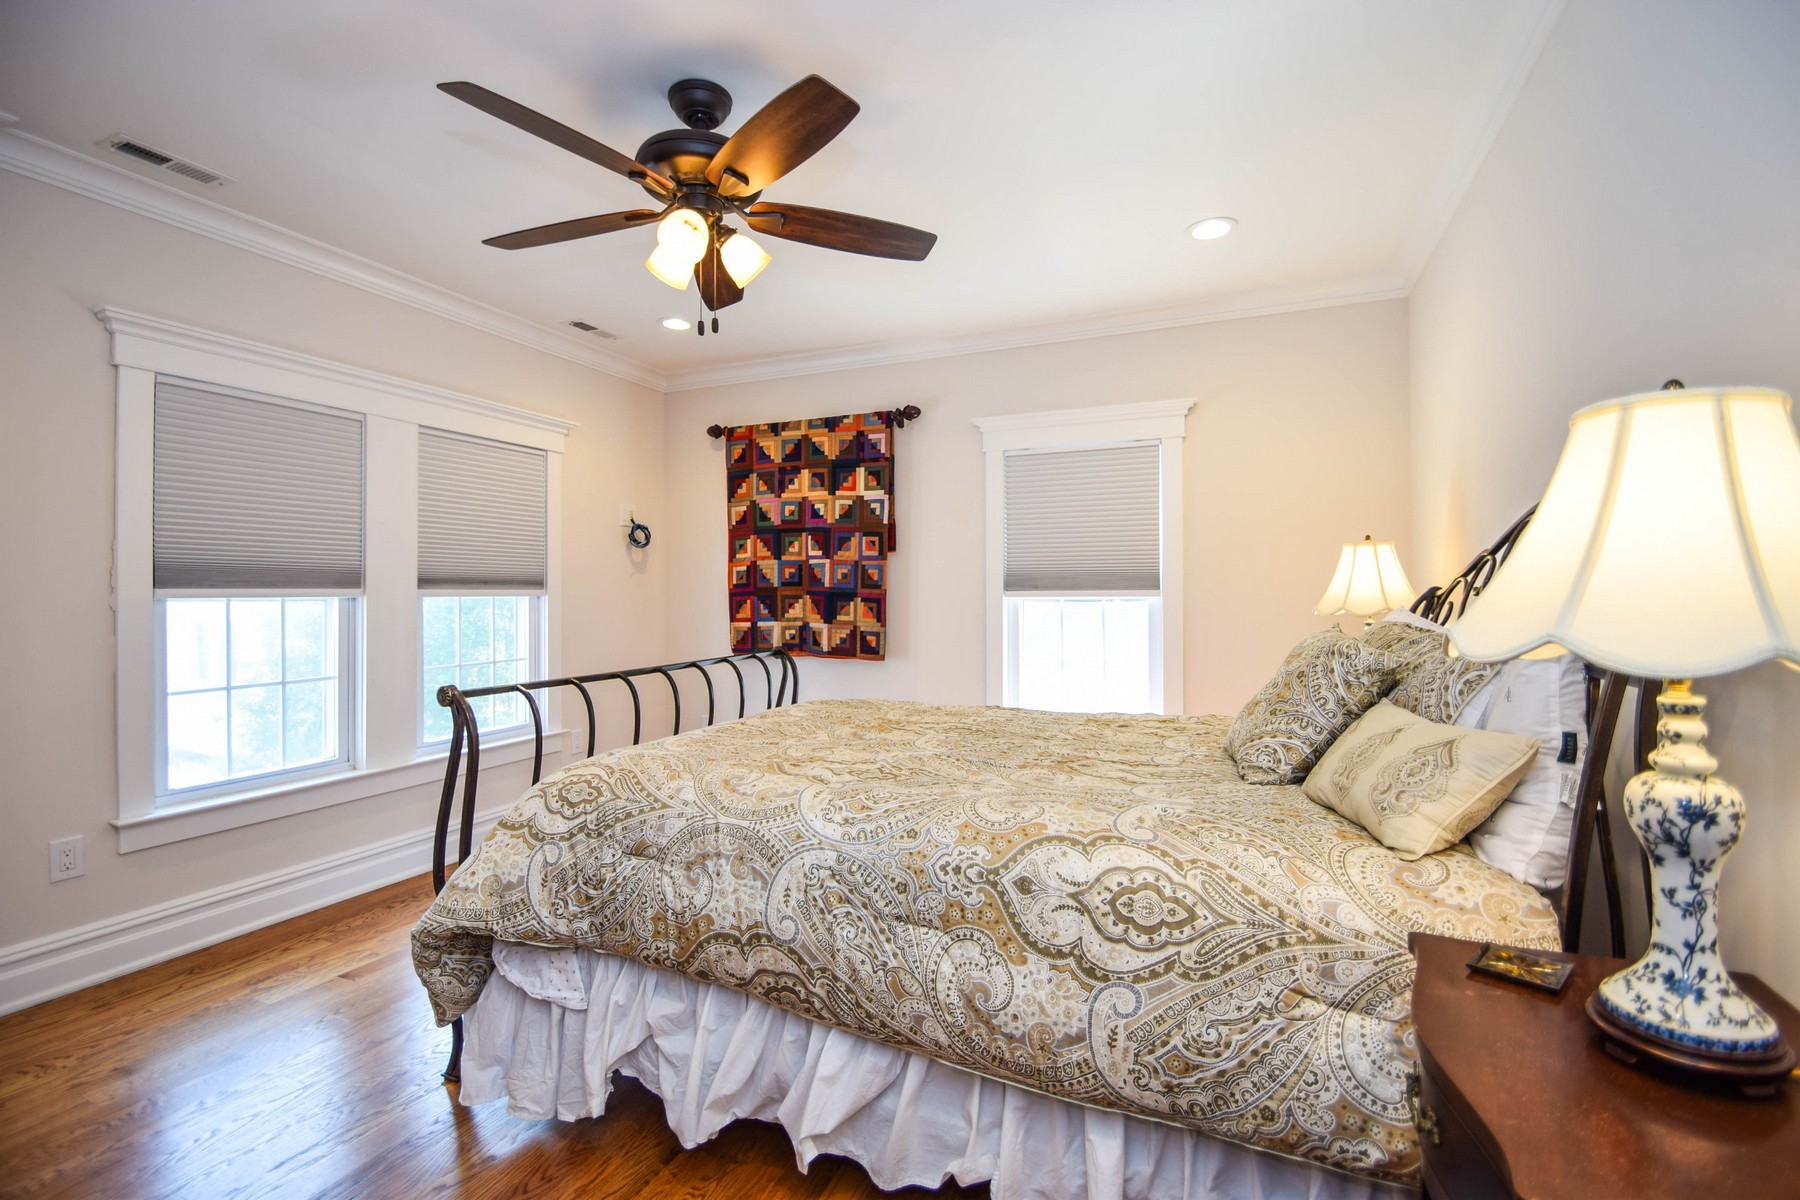 Additional photo for property listing at 102 S Cambridge Ave 102 S Cambridge Avenue Ventnor, New Jersey 08406 United States